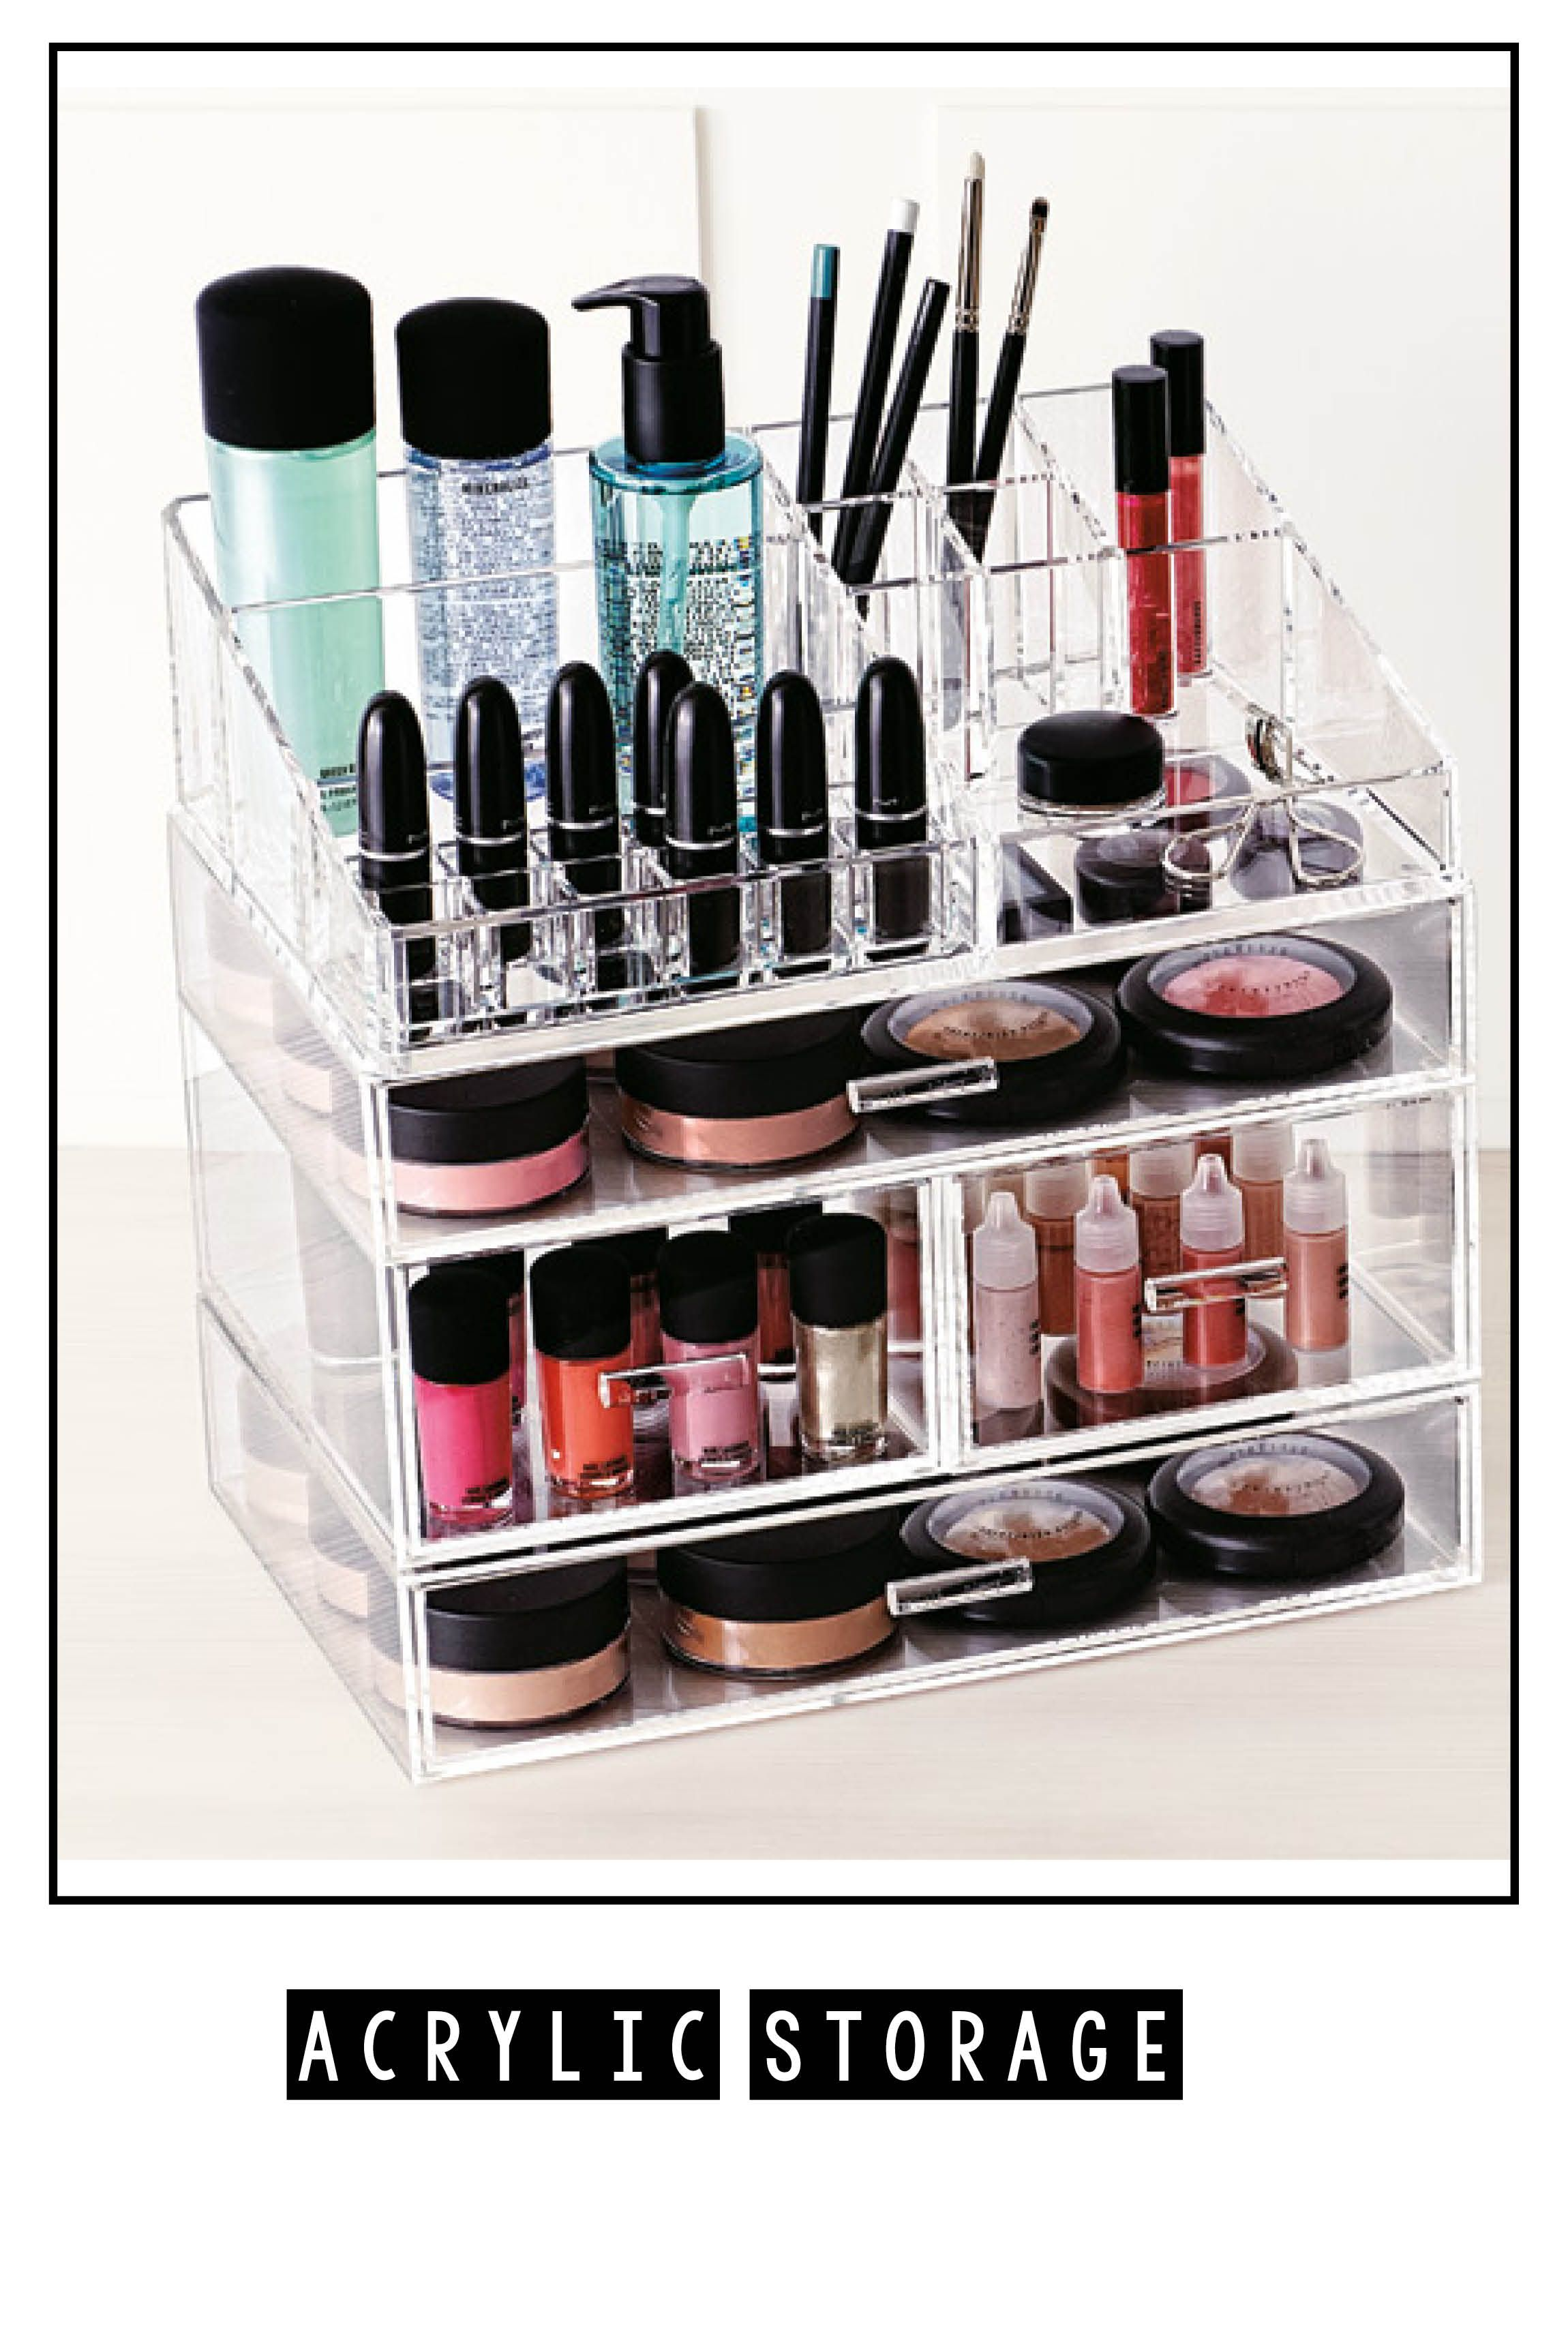 Clear acrylic containers are a great way to store makeup